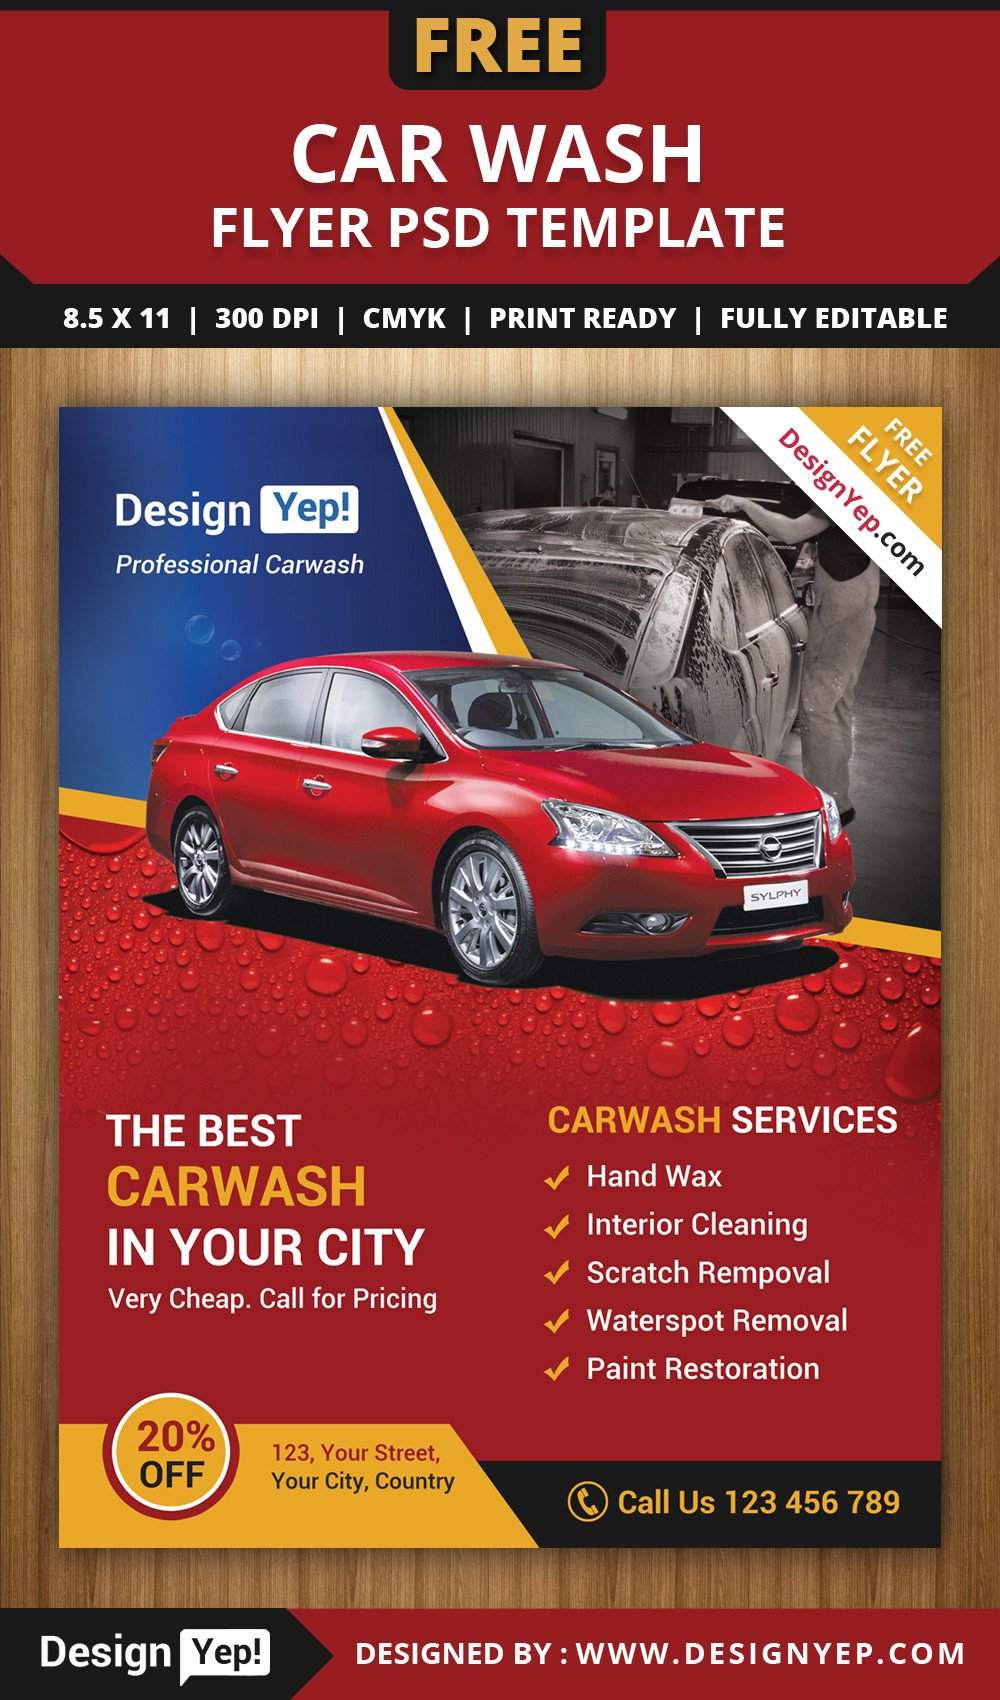 Auto Detailing Flyer Template Free Car Wash Flyer Psd Template Designyep